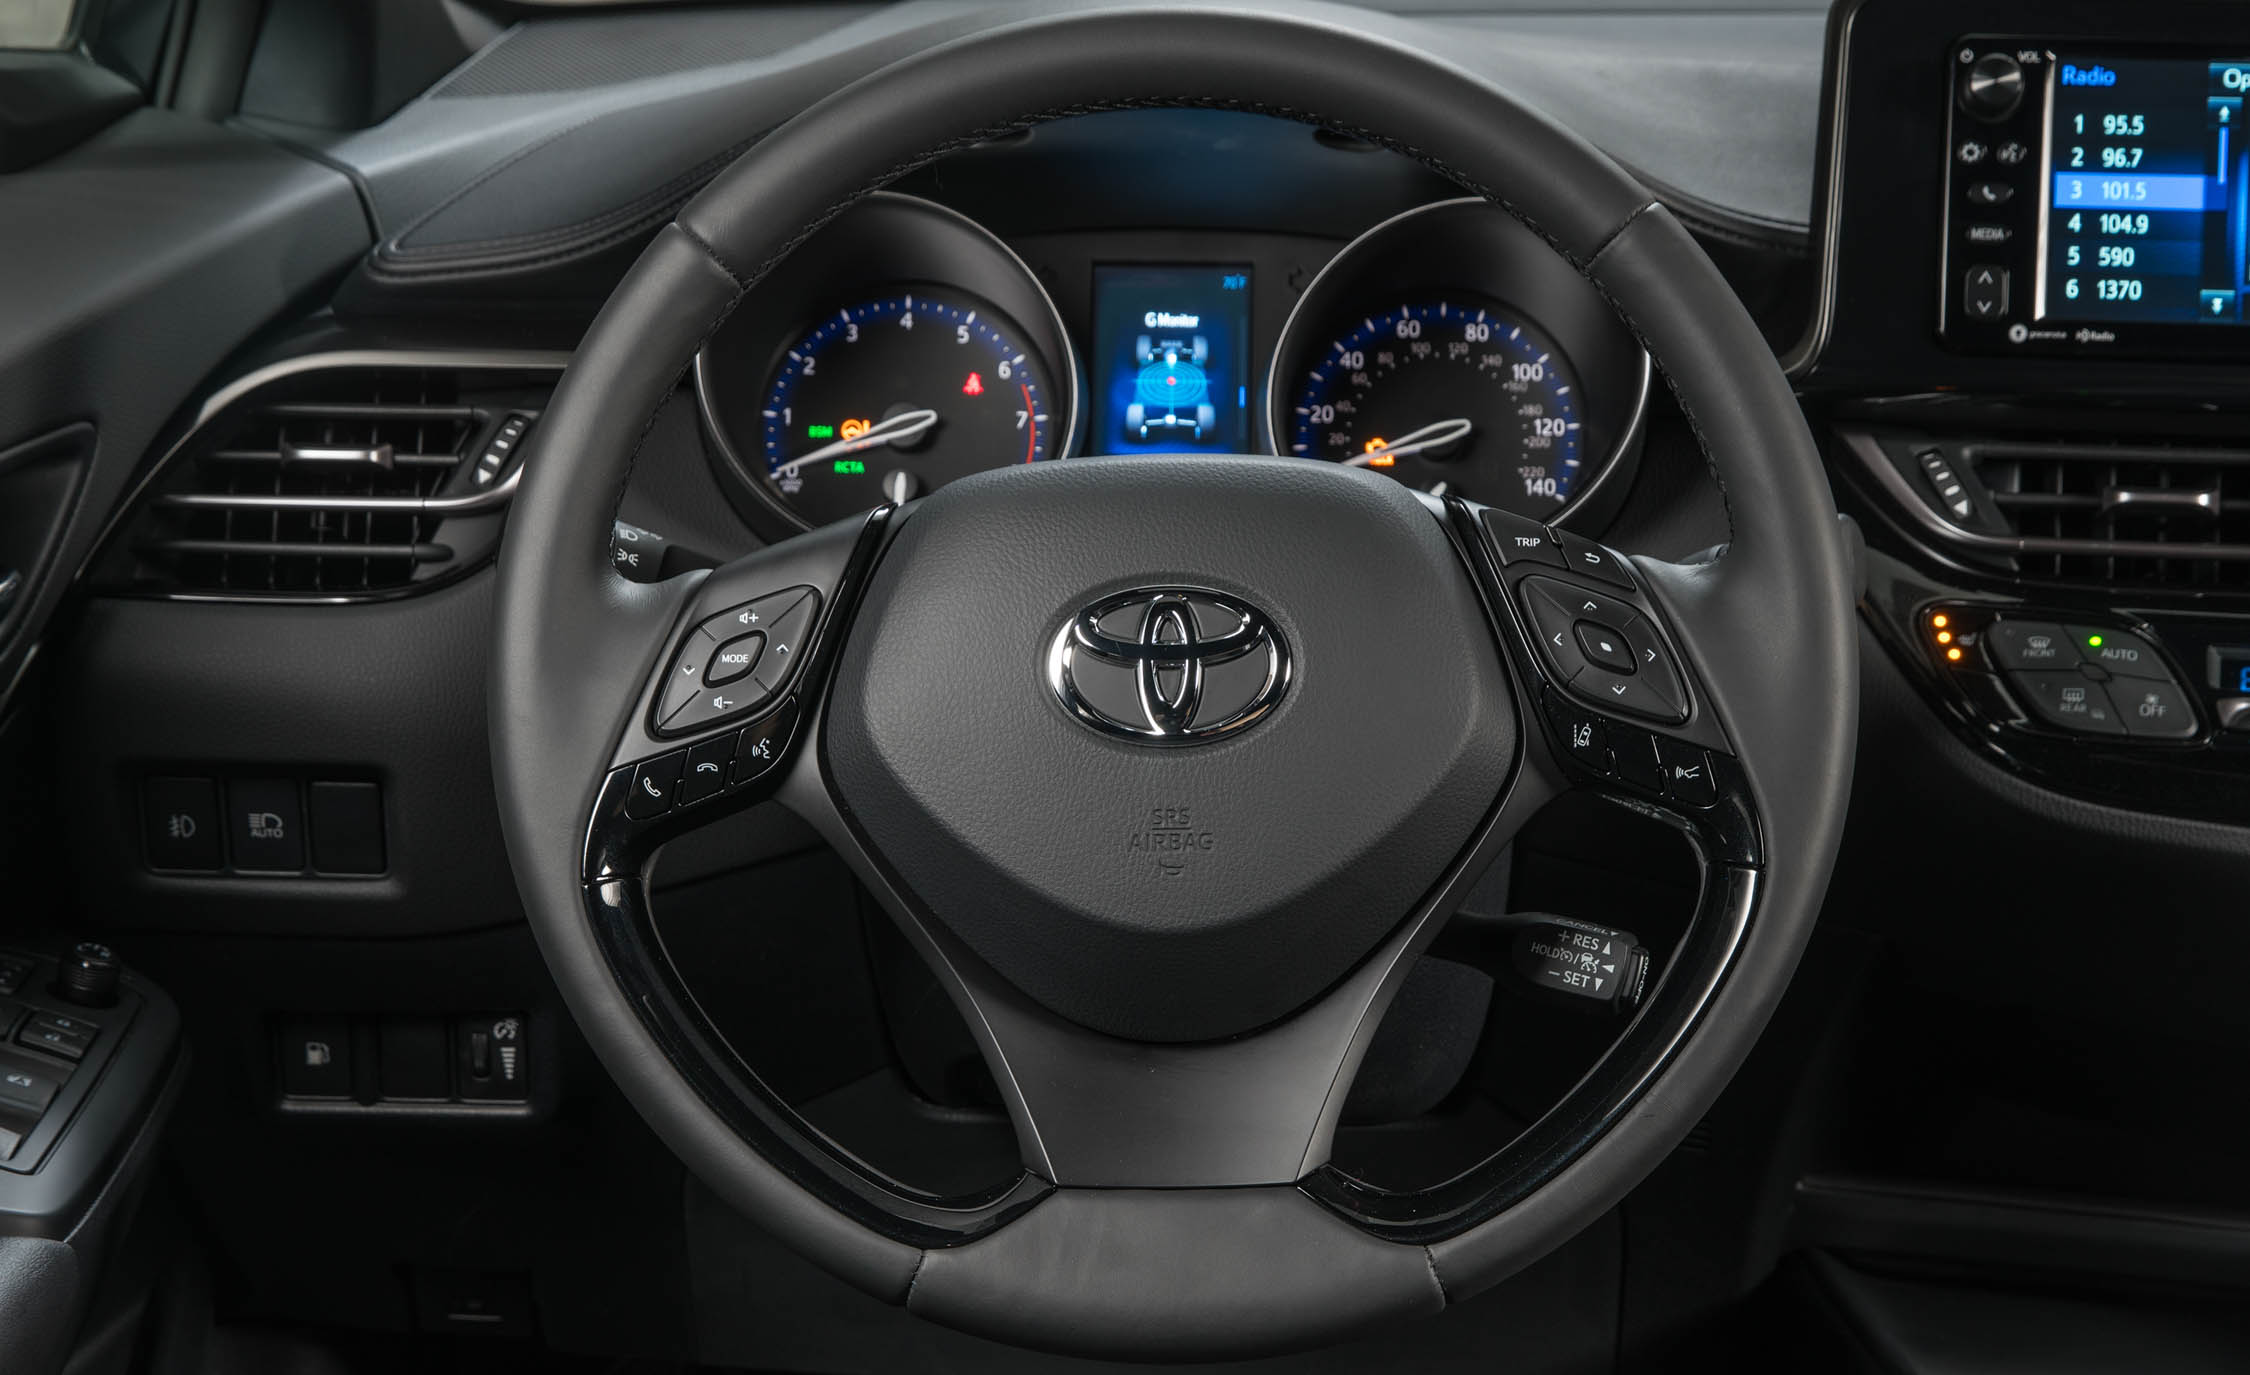 2018 Toyota C HR Interior View Driver Steering Cockpit (Photo 18 of 33)